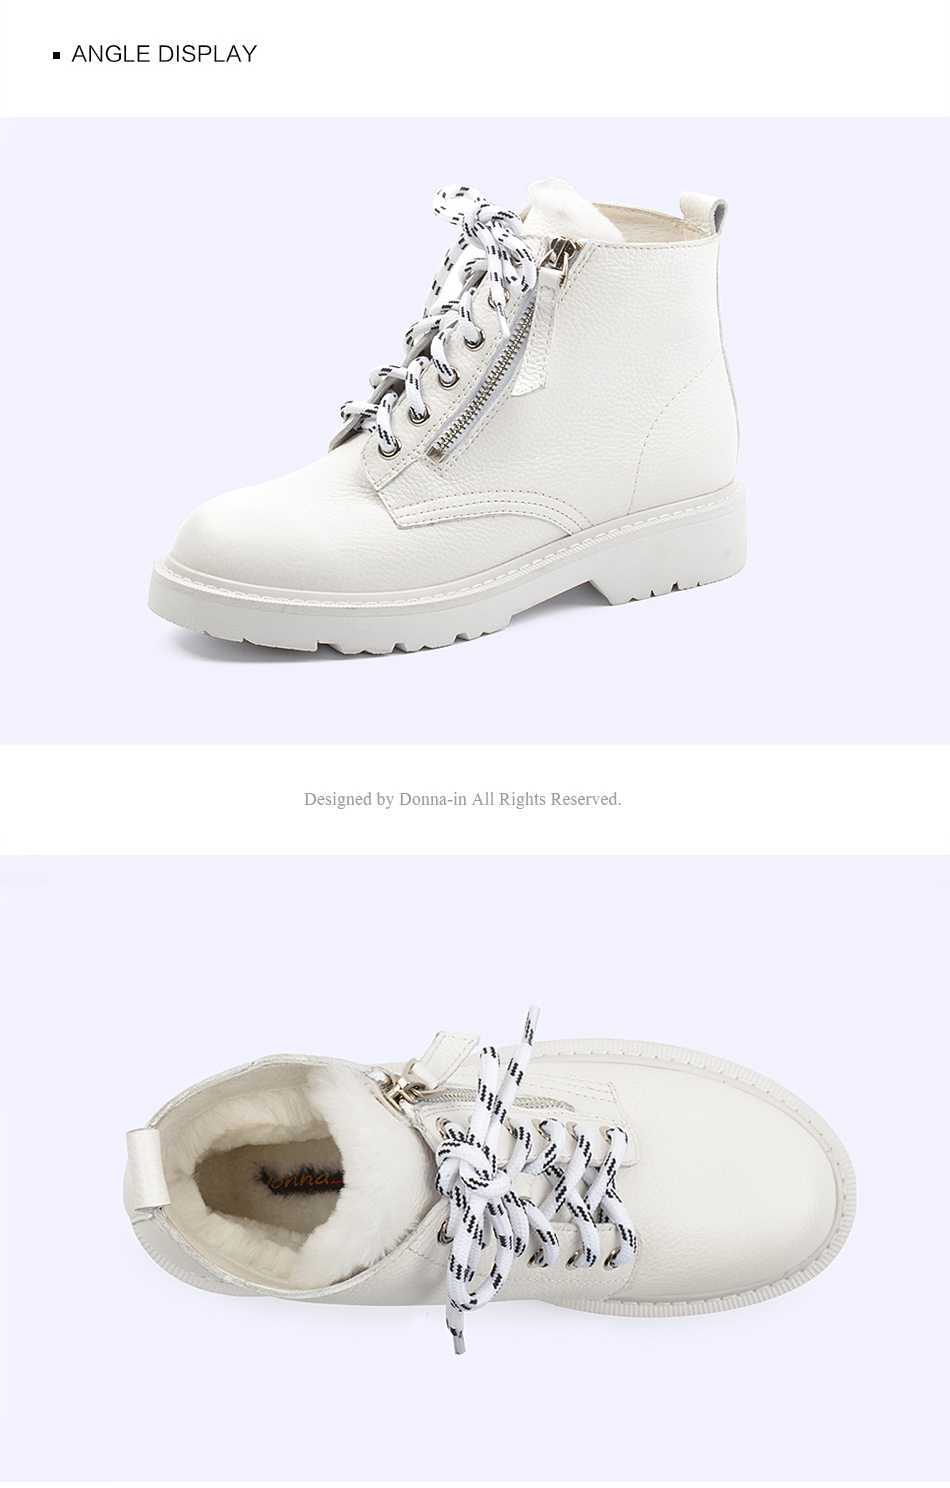 Donna-in Winter Martin Boots Women Platform Ankle Boots Heels White Motorcycle Punk Booties Fur Lace Up Snow Shoes for Ladies (1)